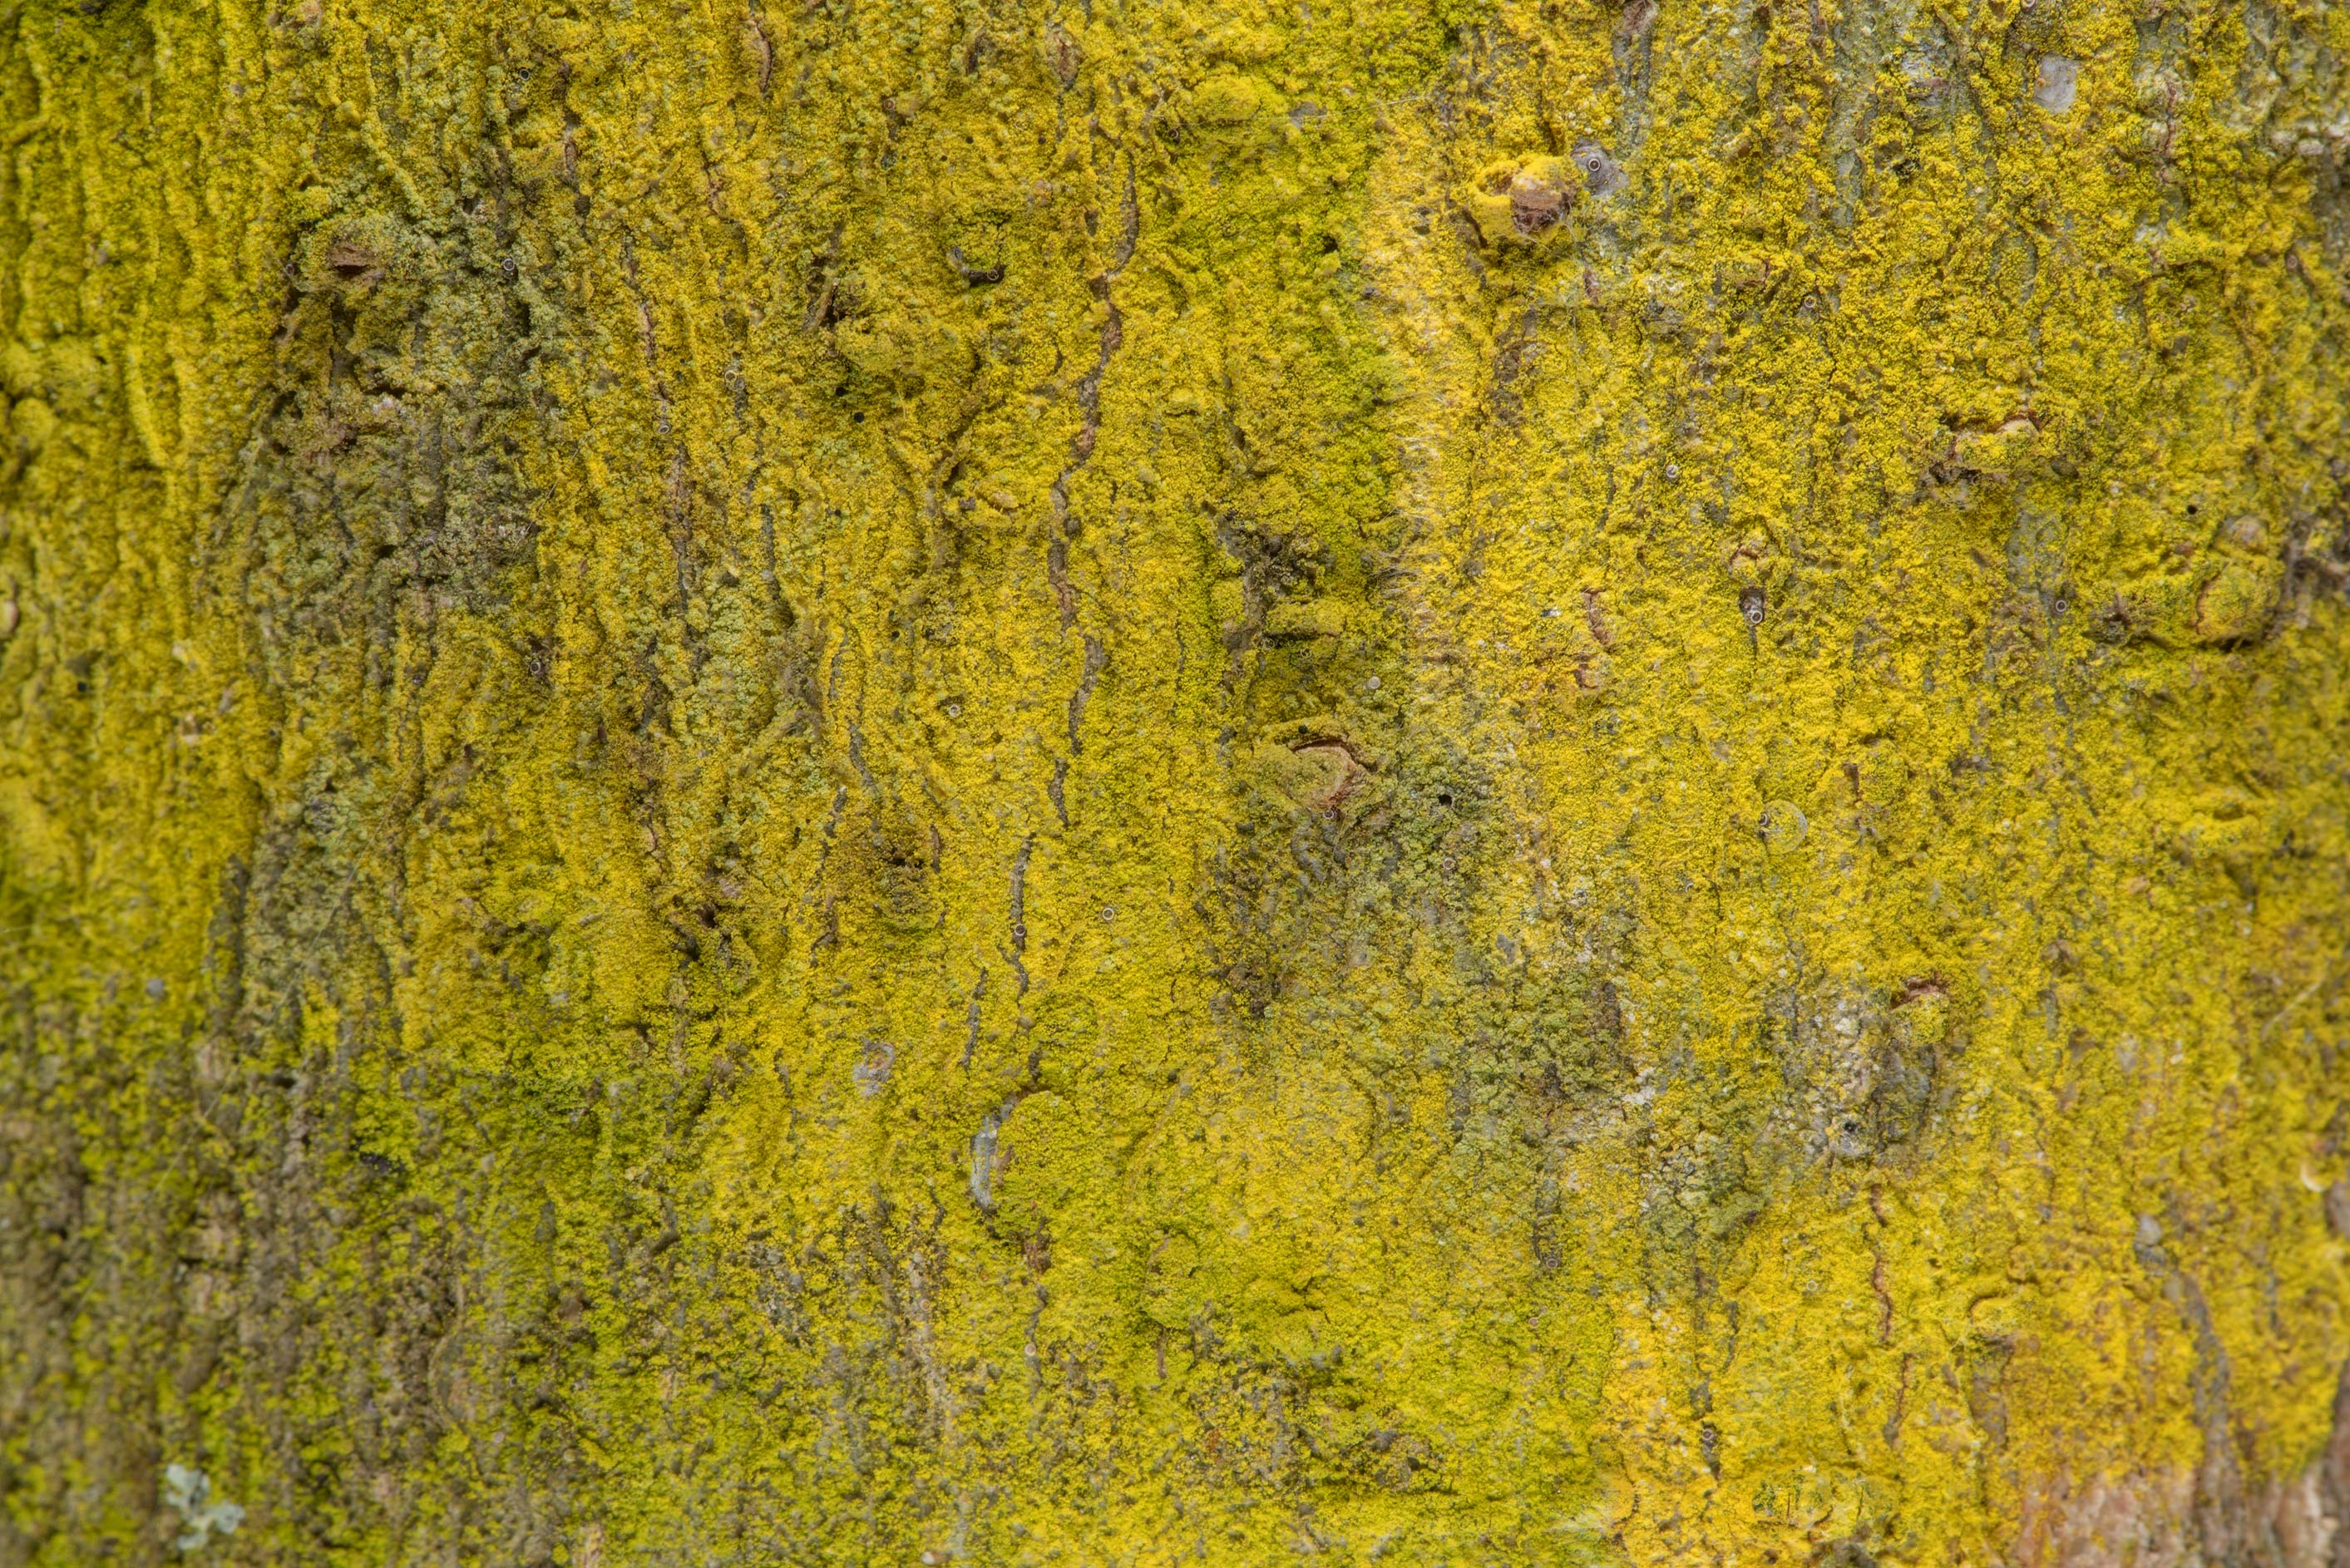 Gold dust lichen Chrysothrix xanthina on tree bark on Turkey Creek Trail. Bryan, Texas